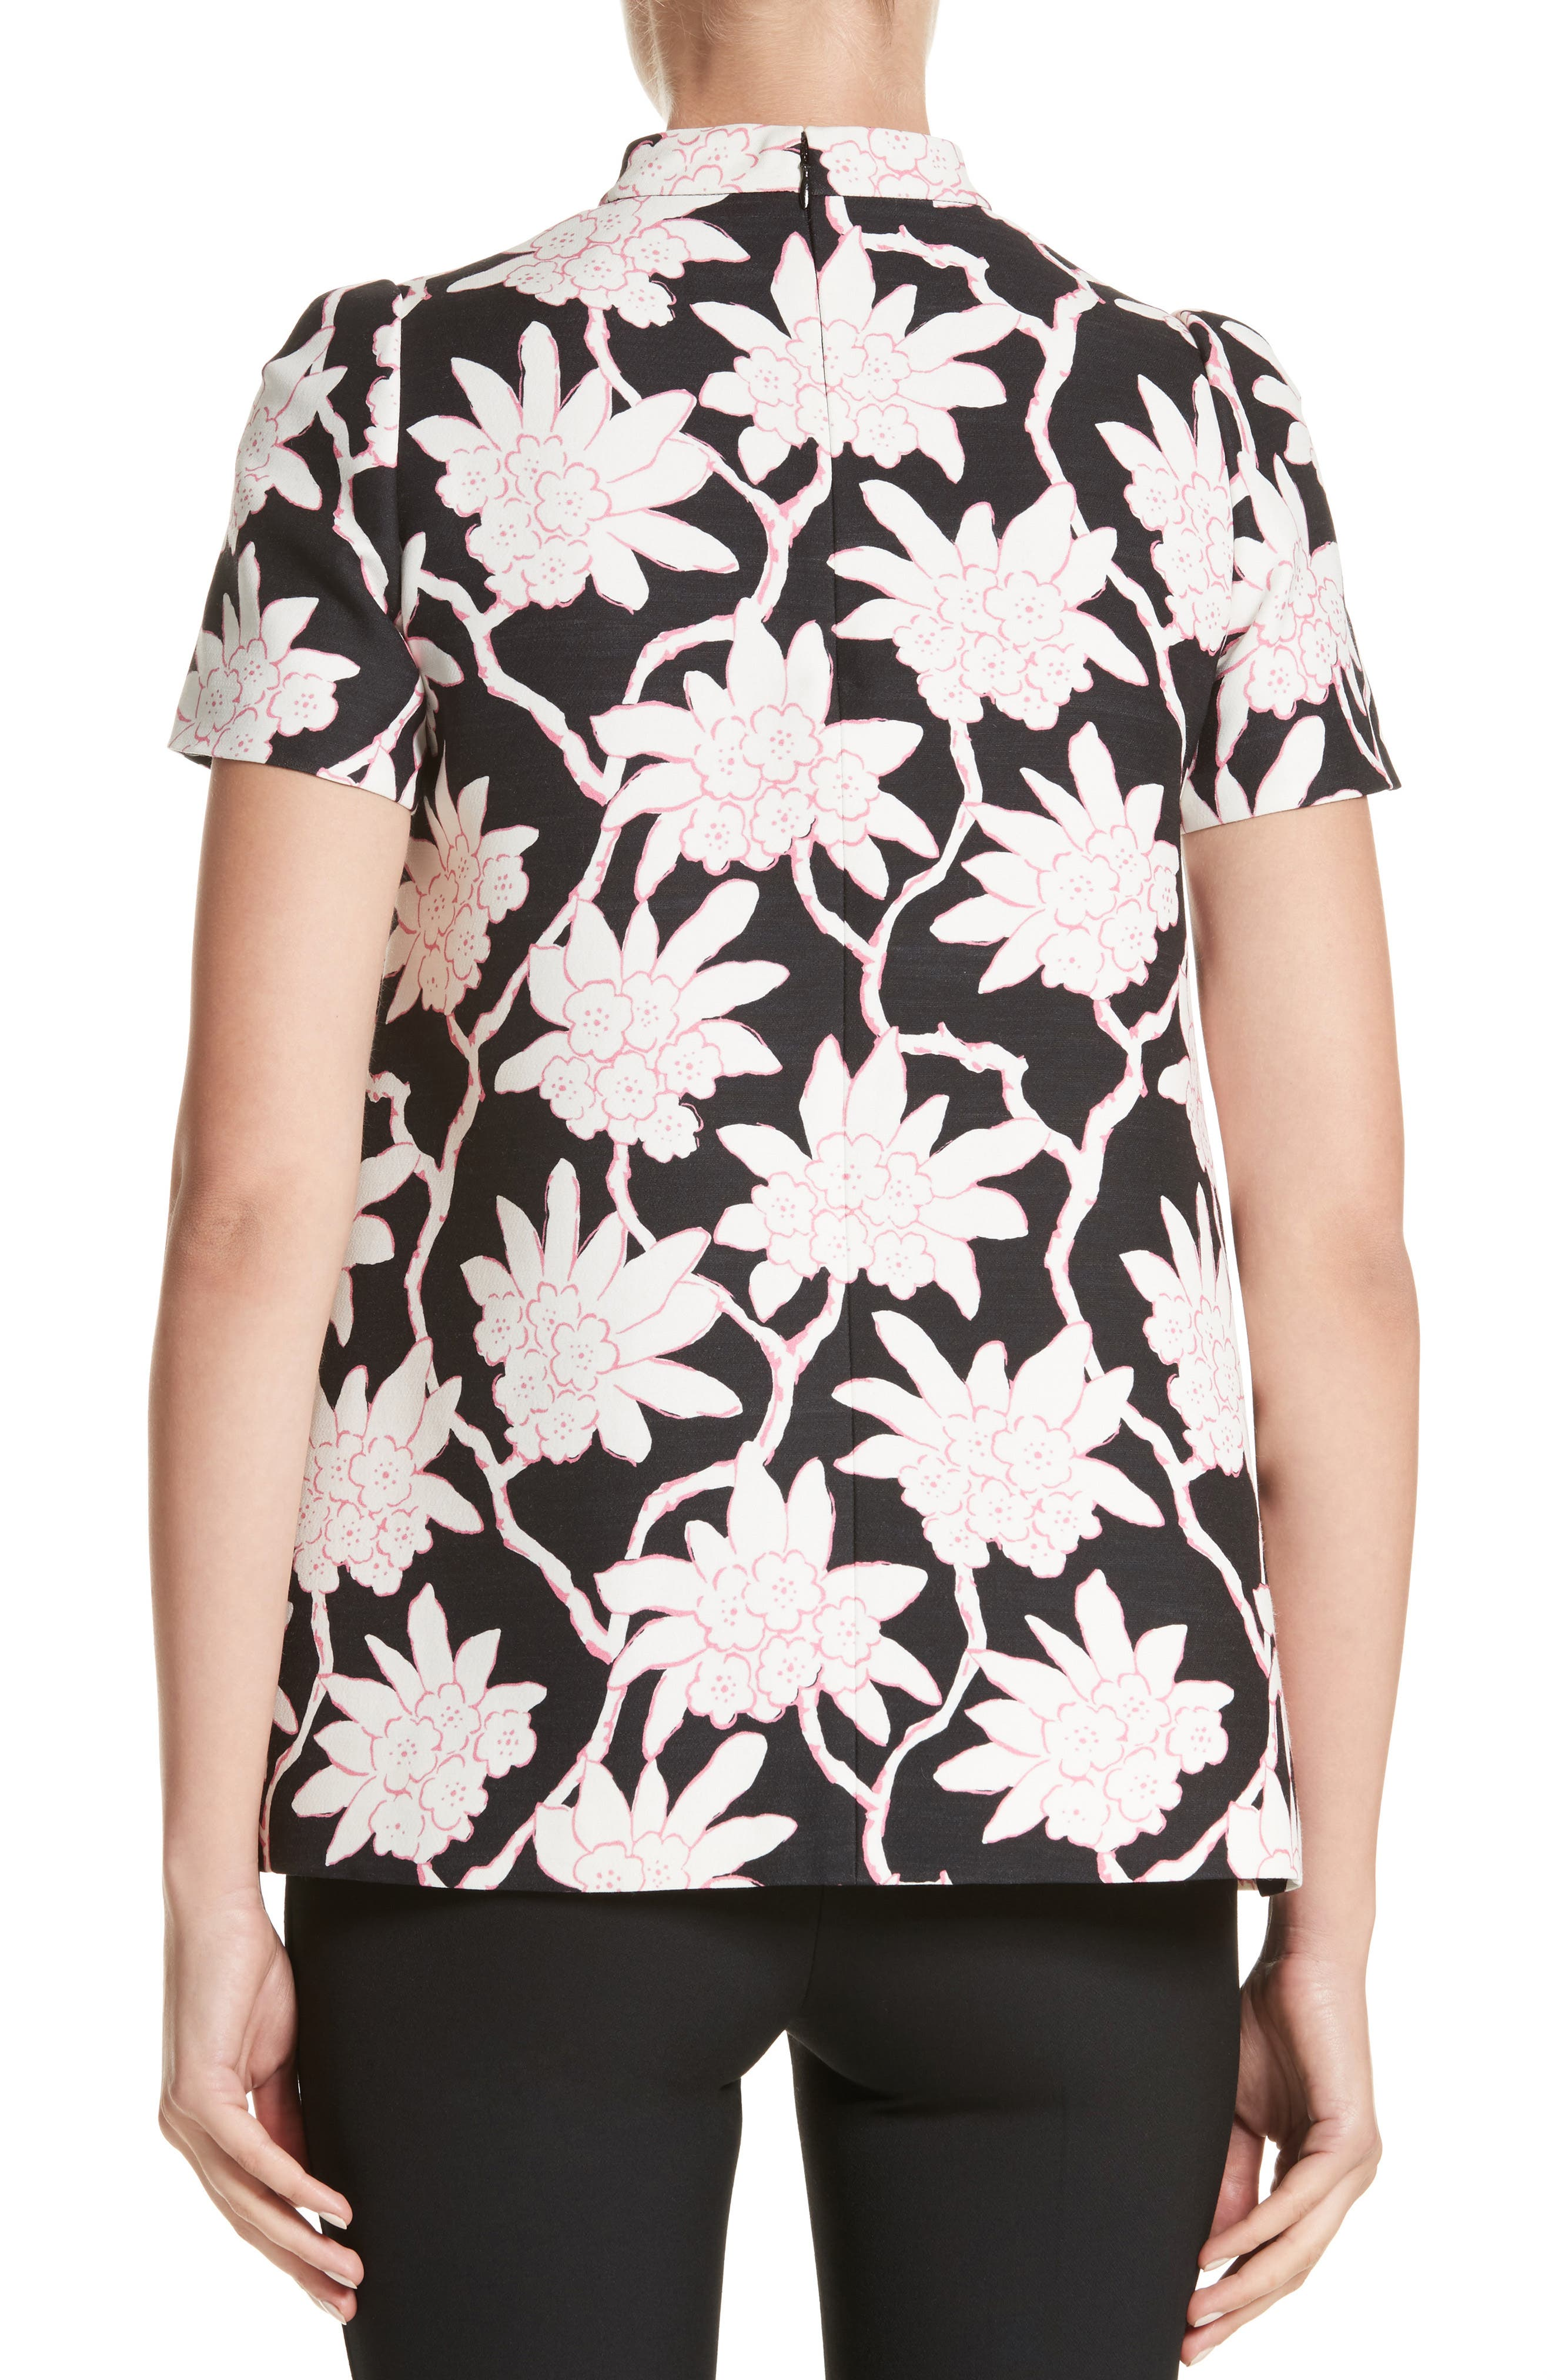 Rhododendron Print Wool & Silk Top,                             Alternate thumbnail 2, color,                             Black